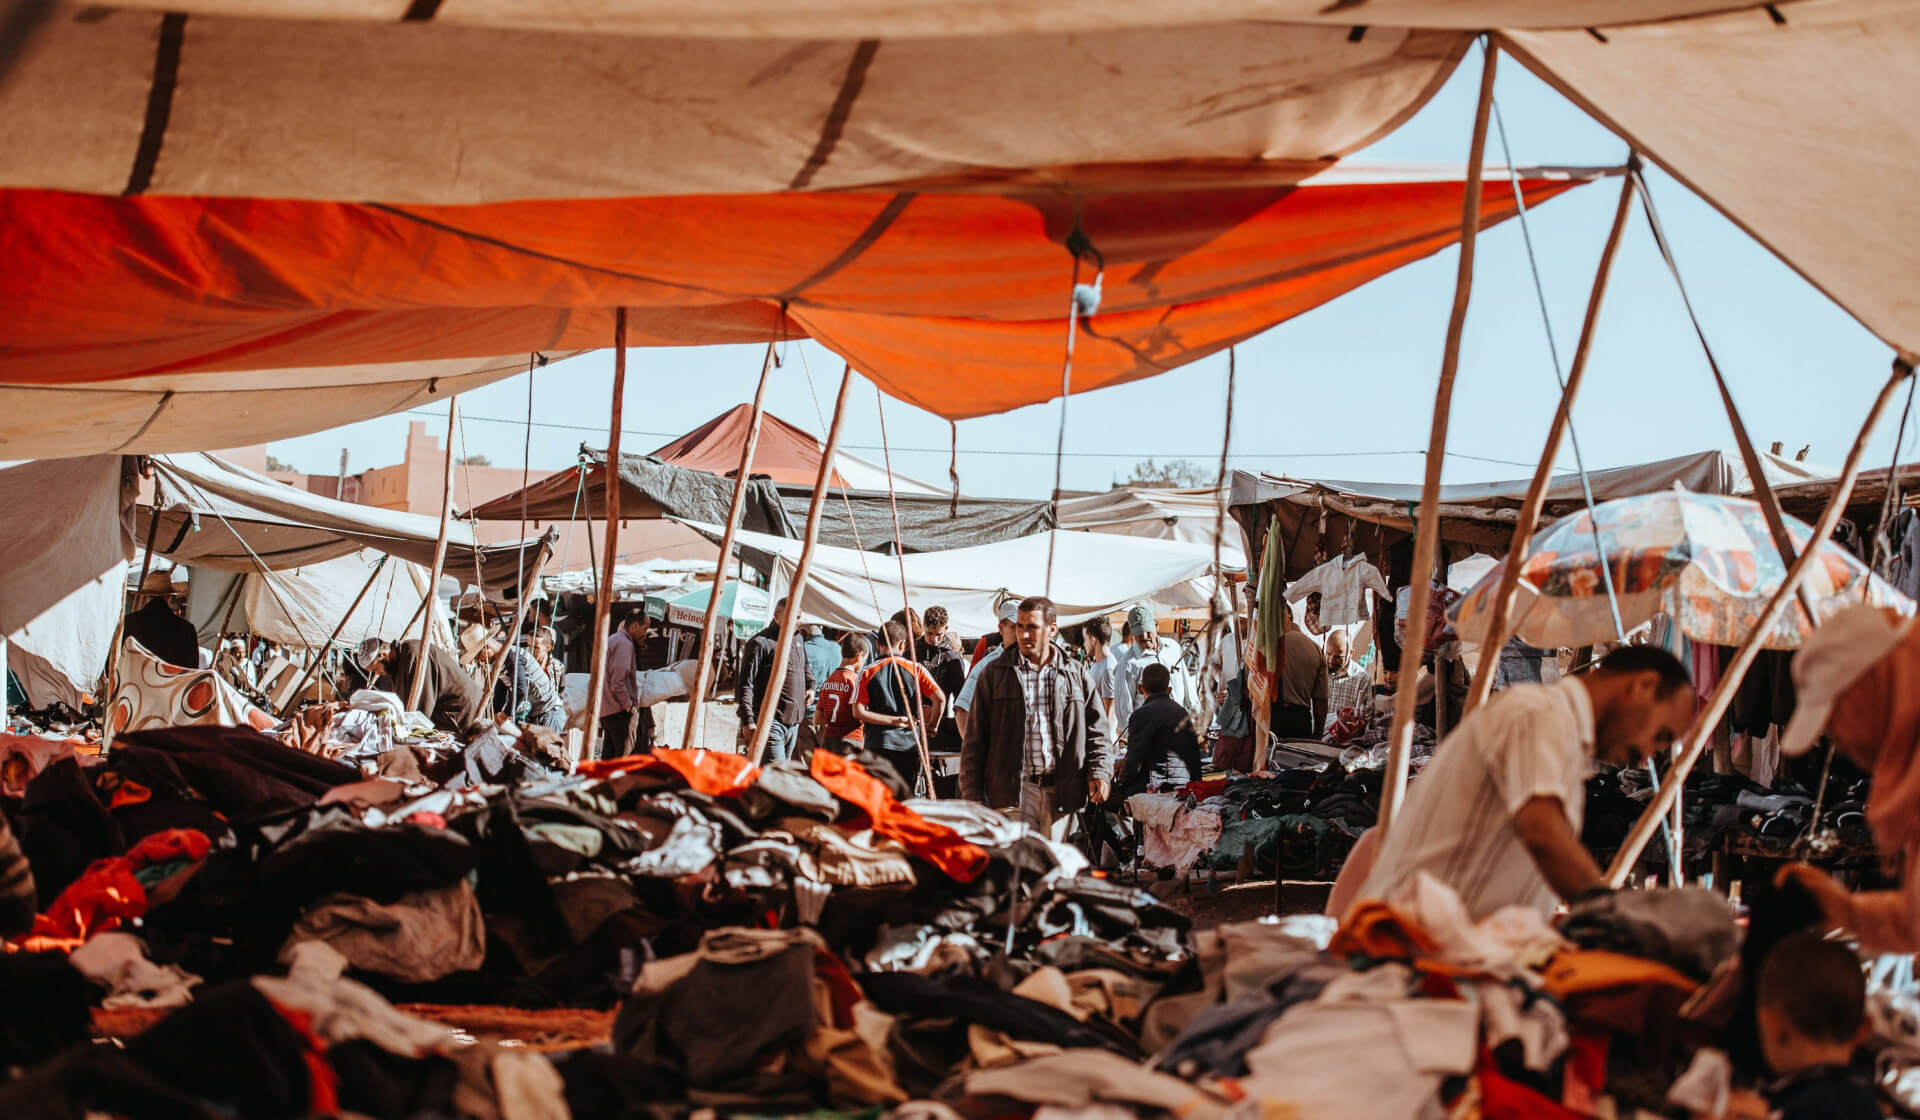 Busy souk market in Marrakech, Morocco with tent canopies and lots of clothing and people shopping